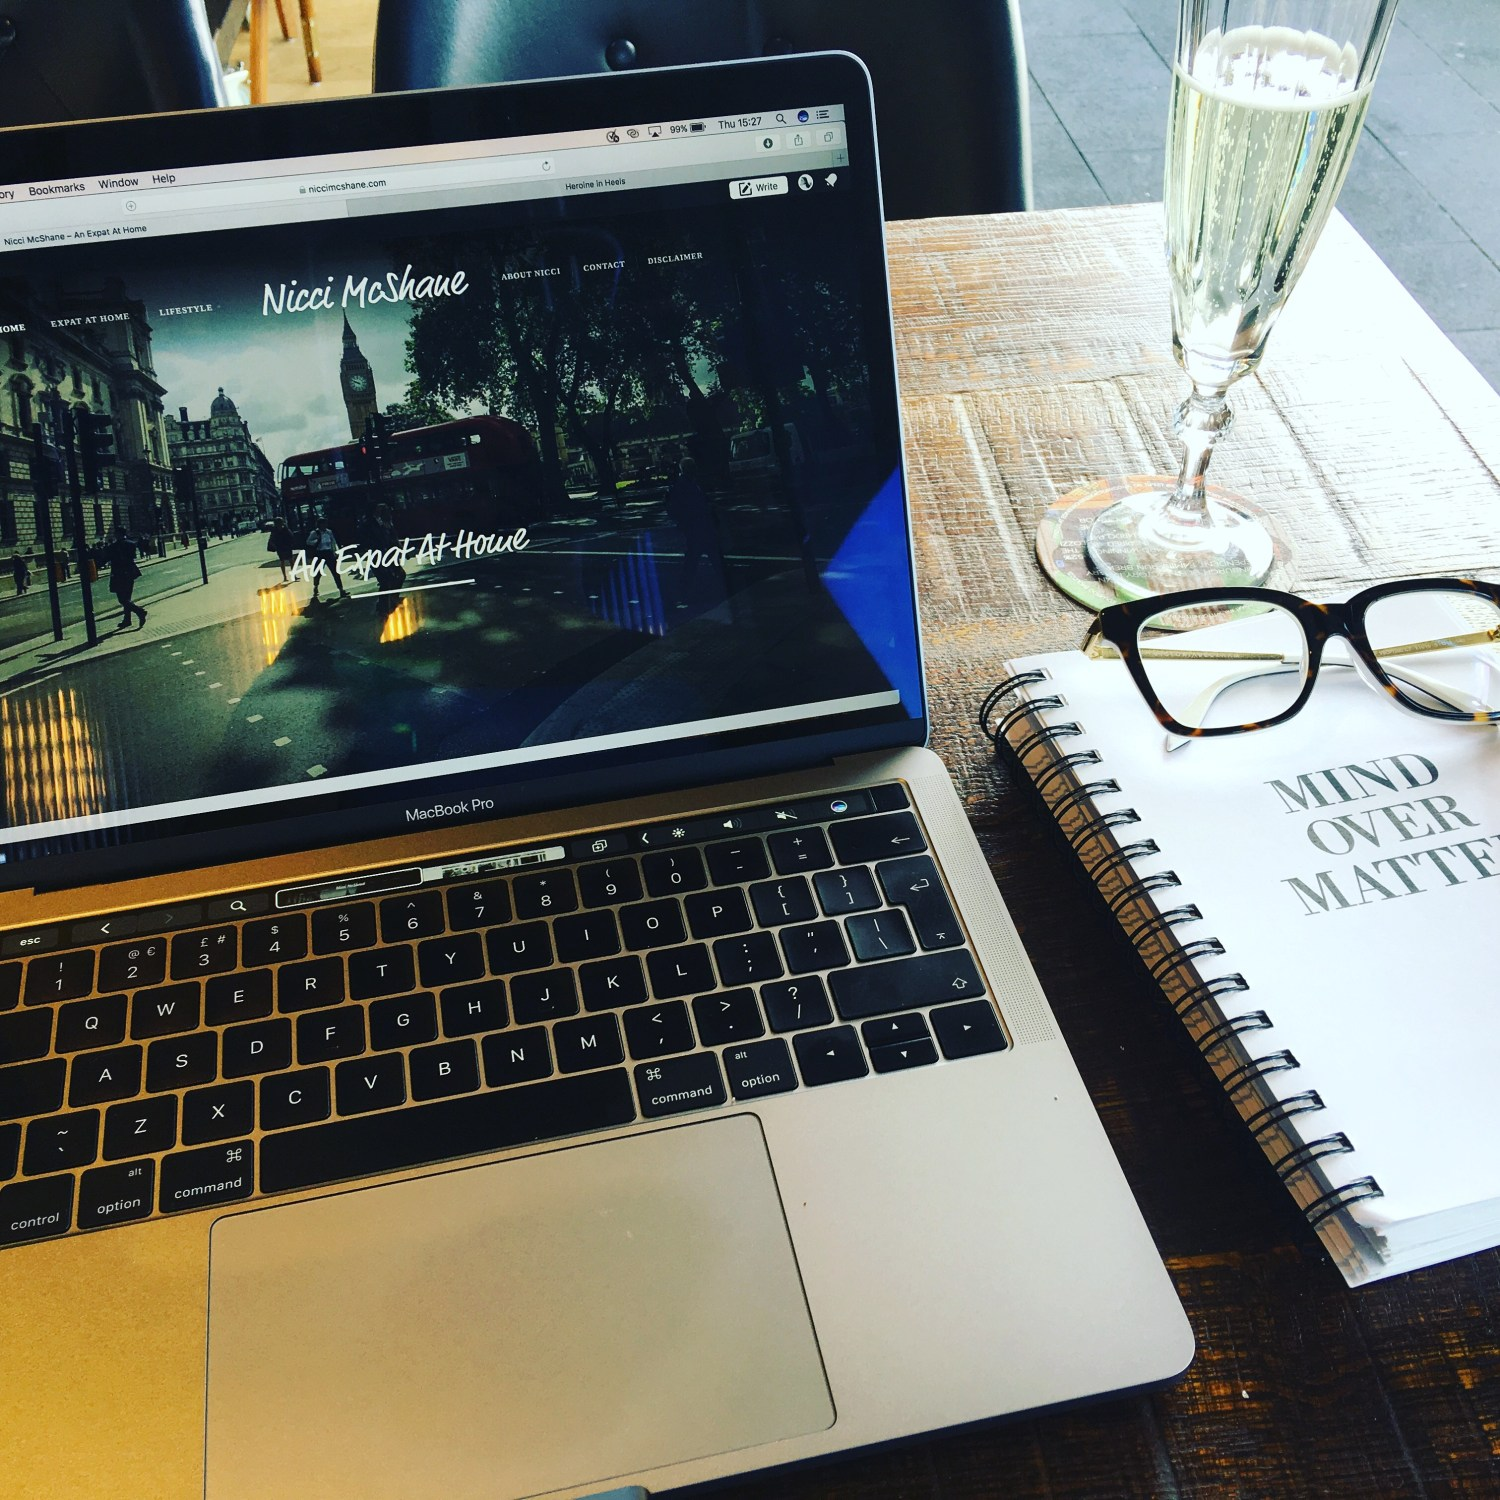 Laptop, blogging journal and glass of prosecco in a pub